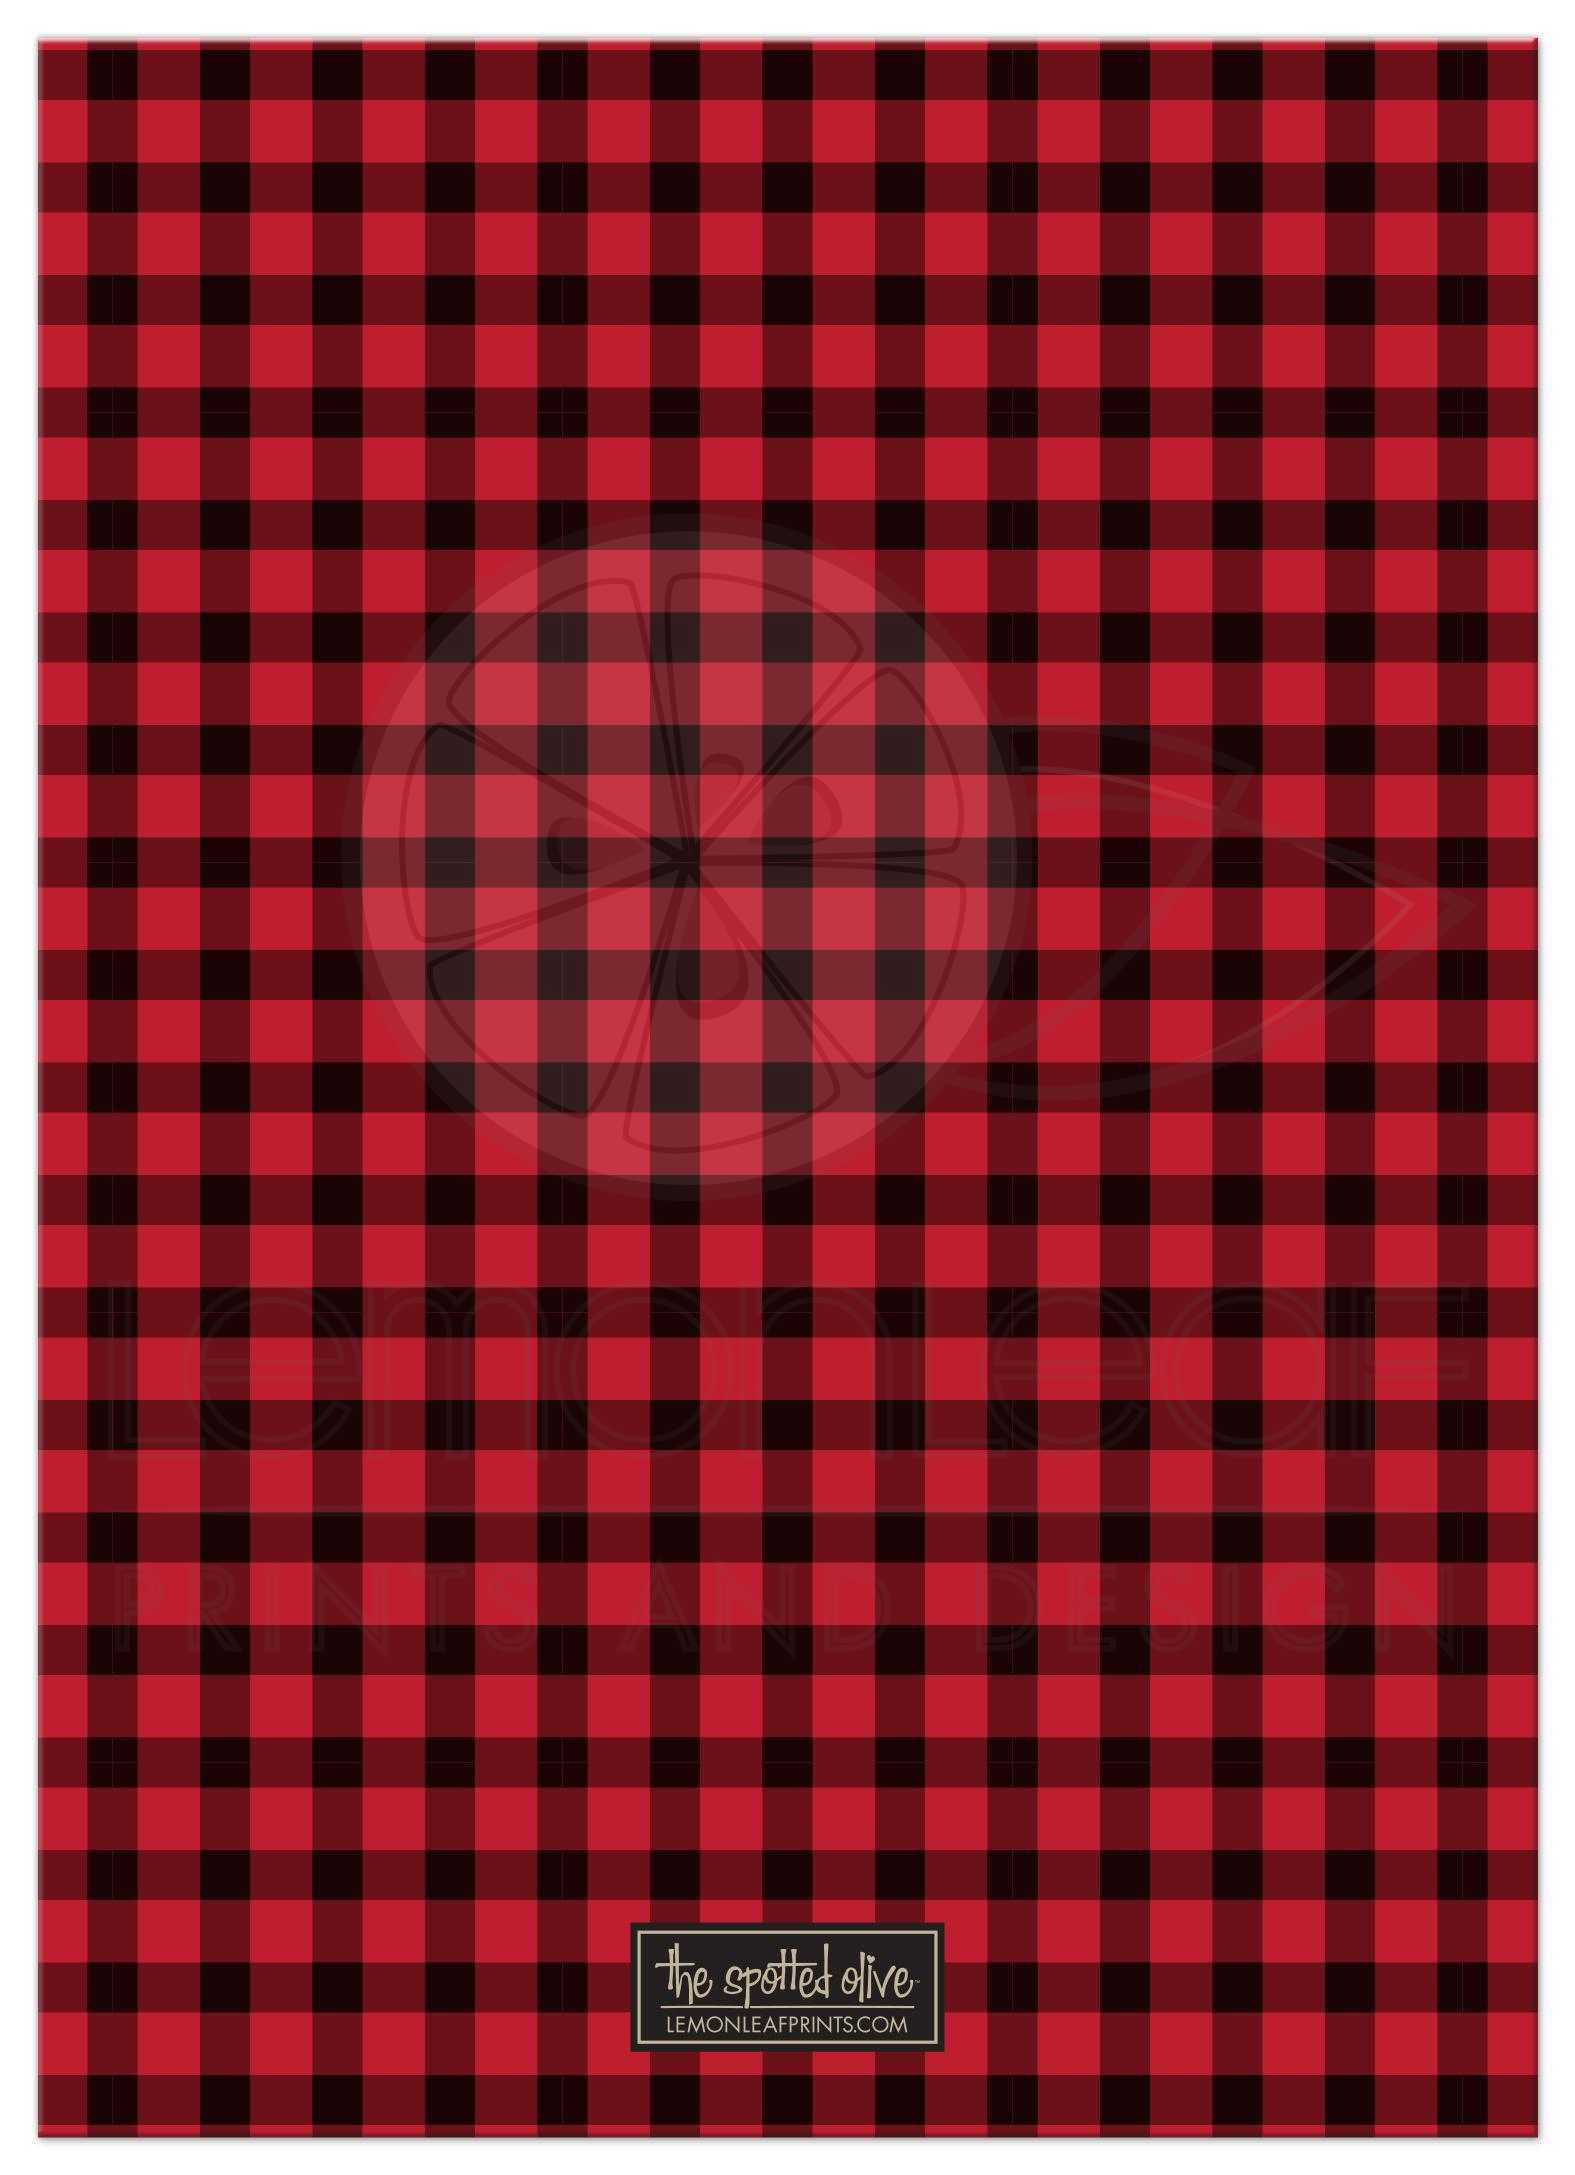 Bachelor party invitations rustic red black plaid stag party rustic red black plaid stag bachelor party invitations monicamarmolfo Choice Image